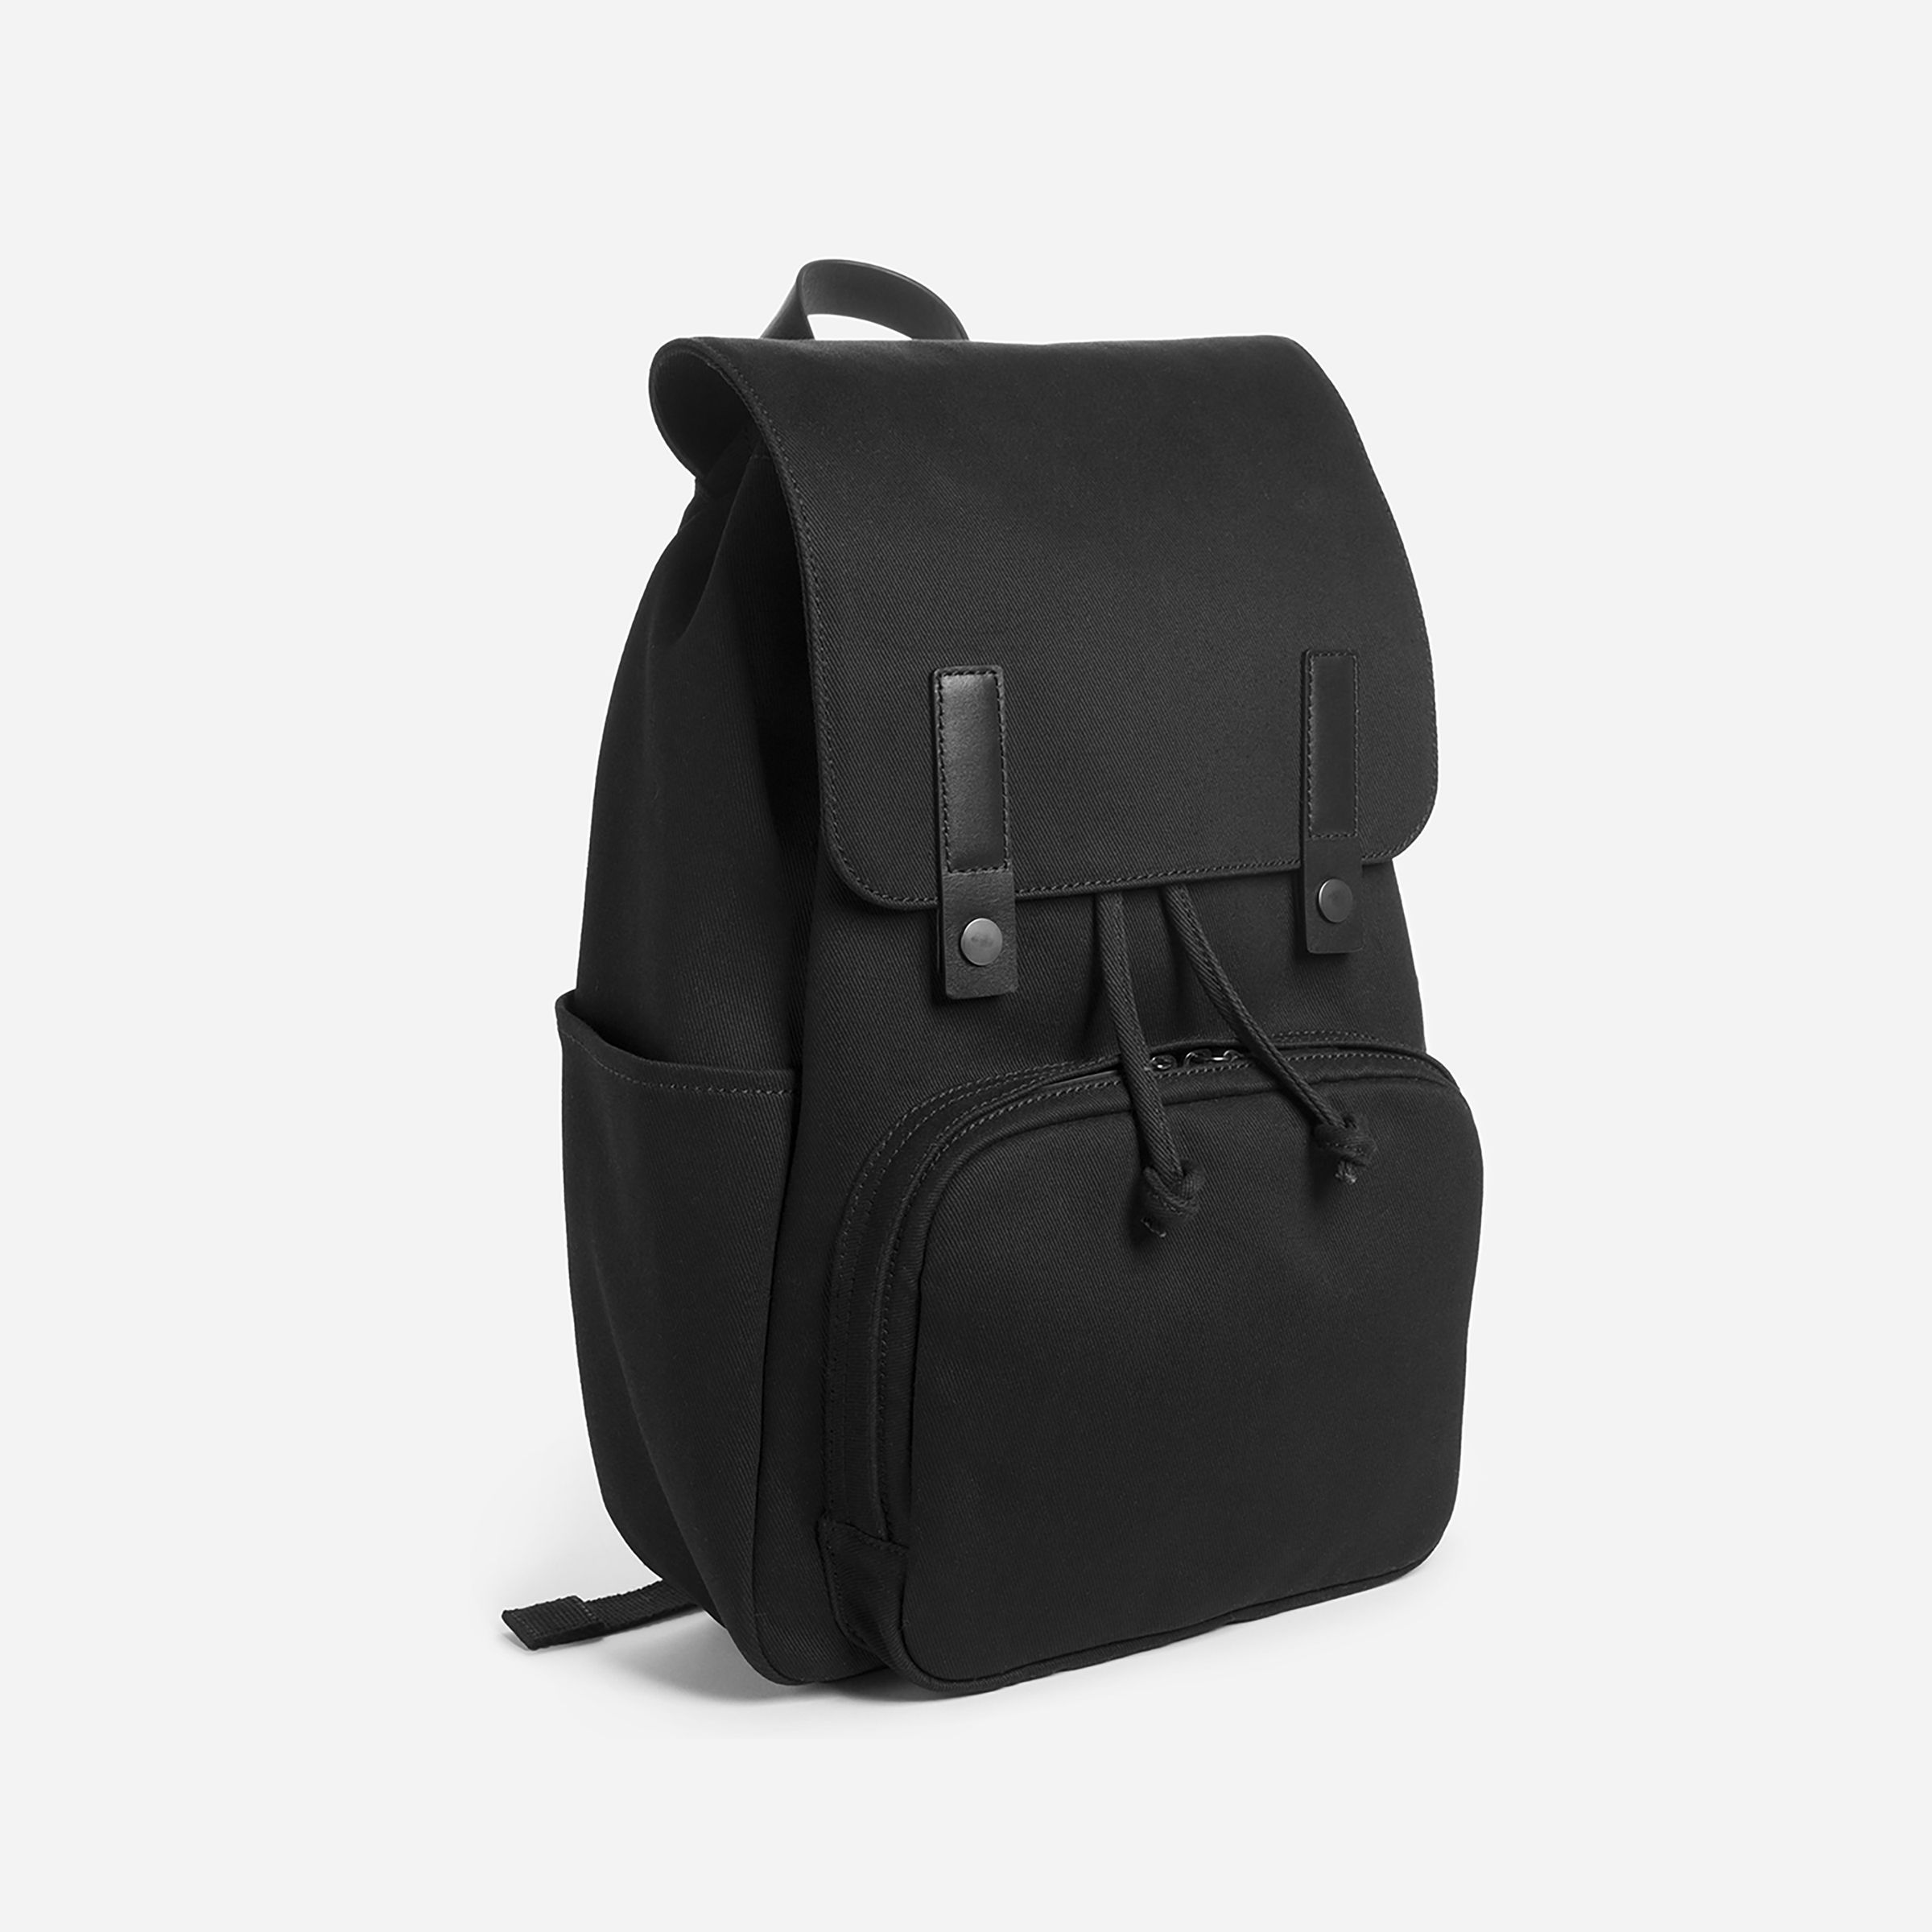 Best Laptop Tote Bags For Work